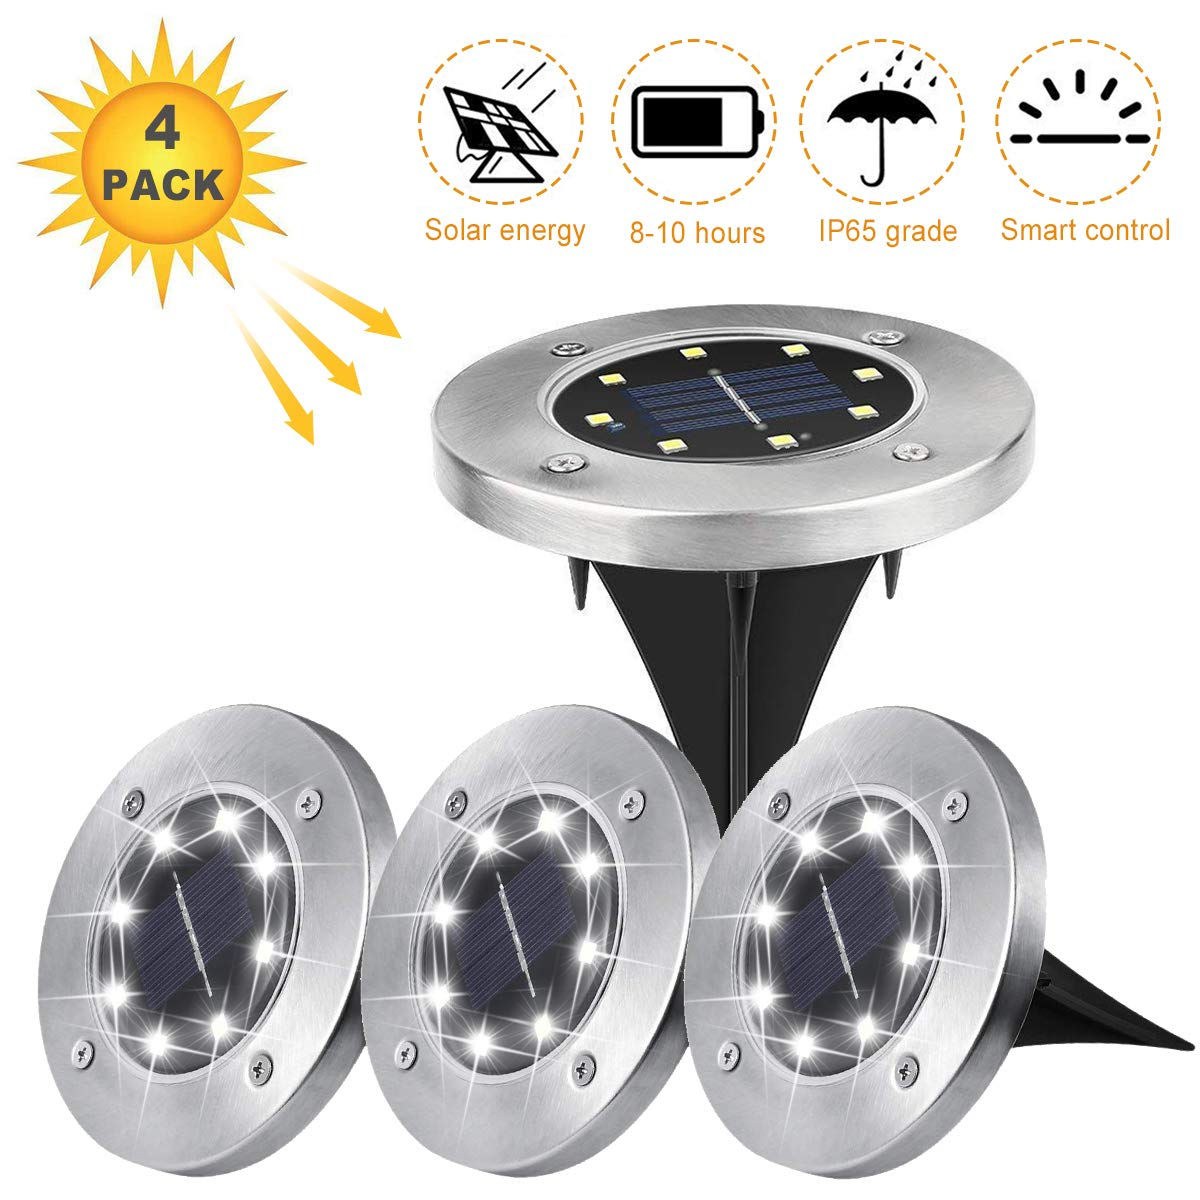 Solar Ground Lights,8 LED Disk Lights Solar PoweredWaterproof Garden Pathway Outdoor In-Ground Lights for Yard,Deck,Lawn,Patio and Walkway,White (4 Pack) (White)